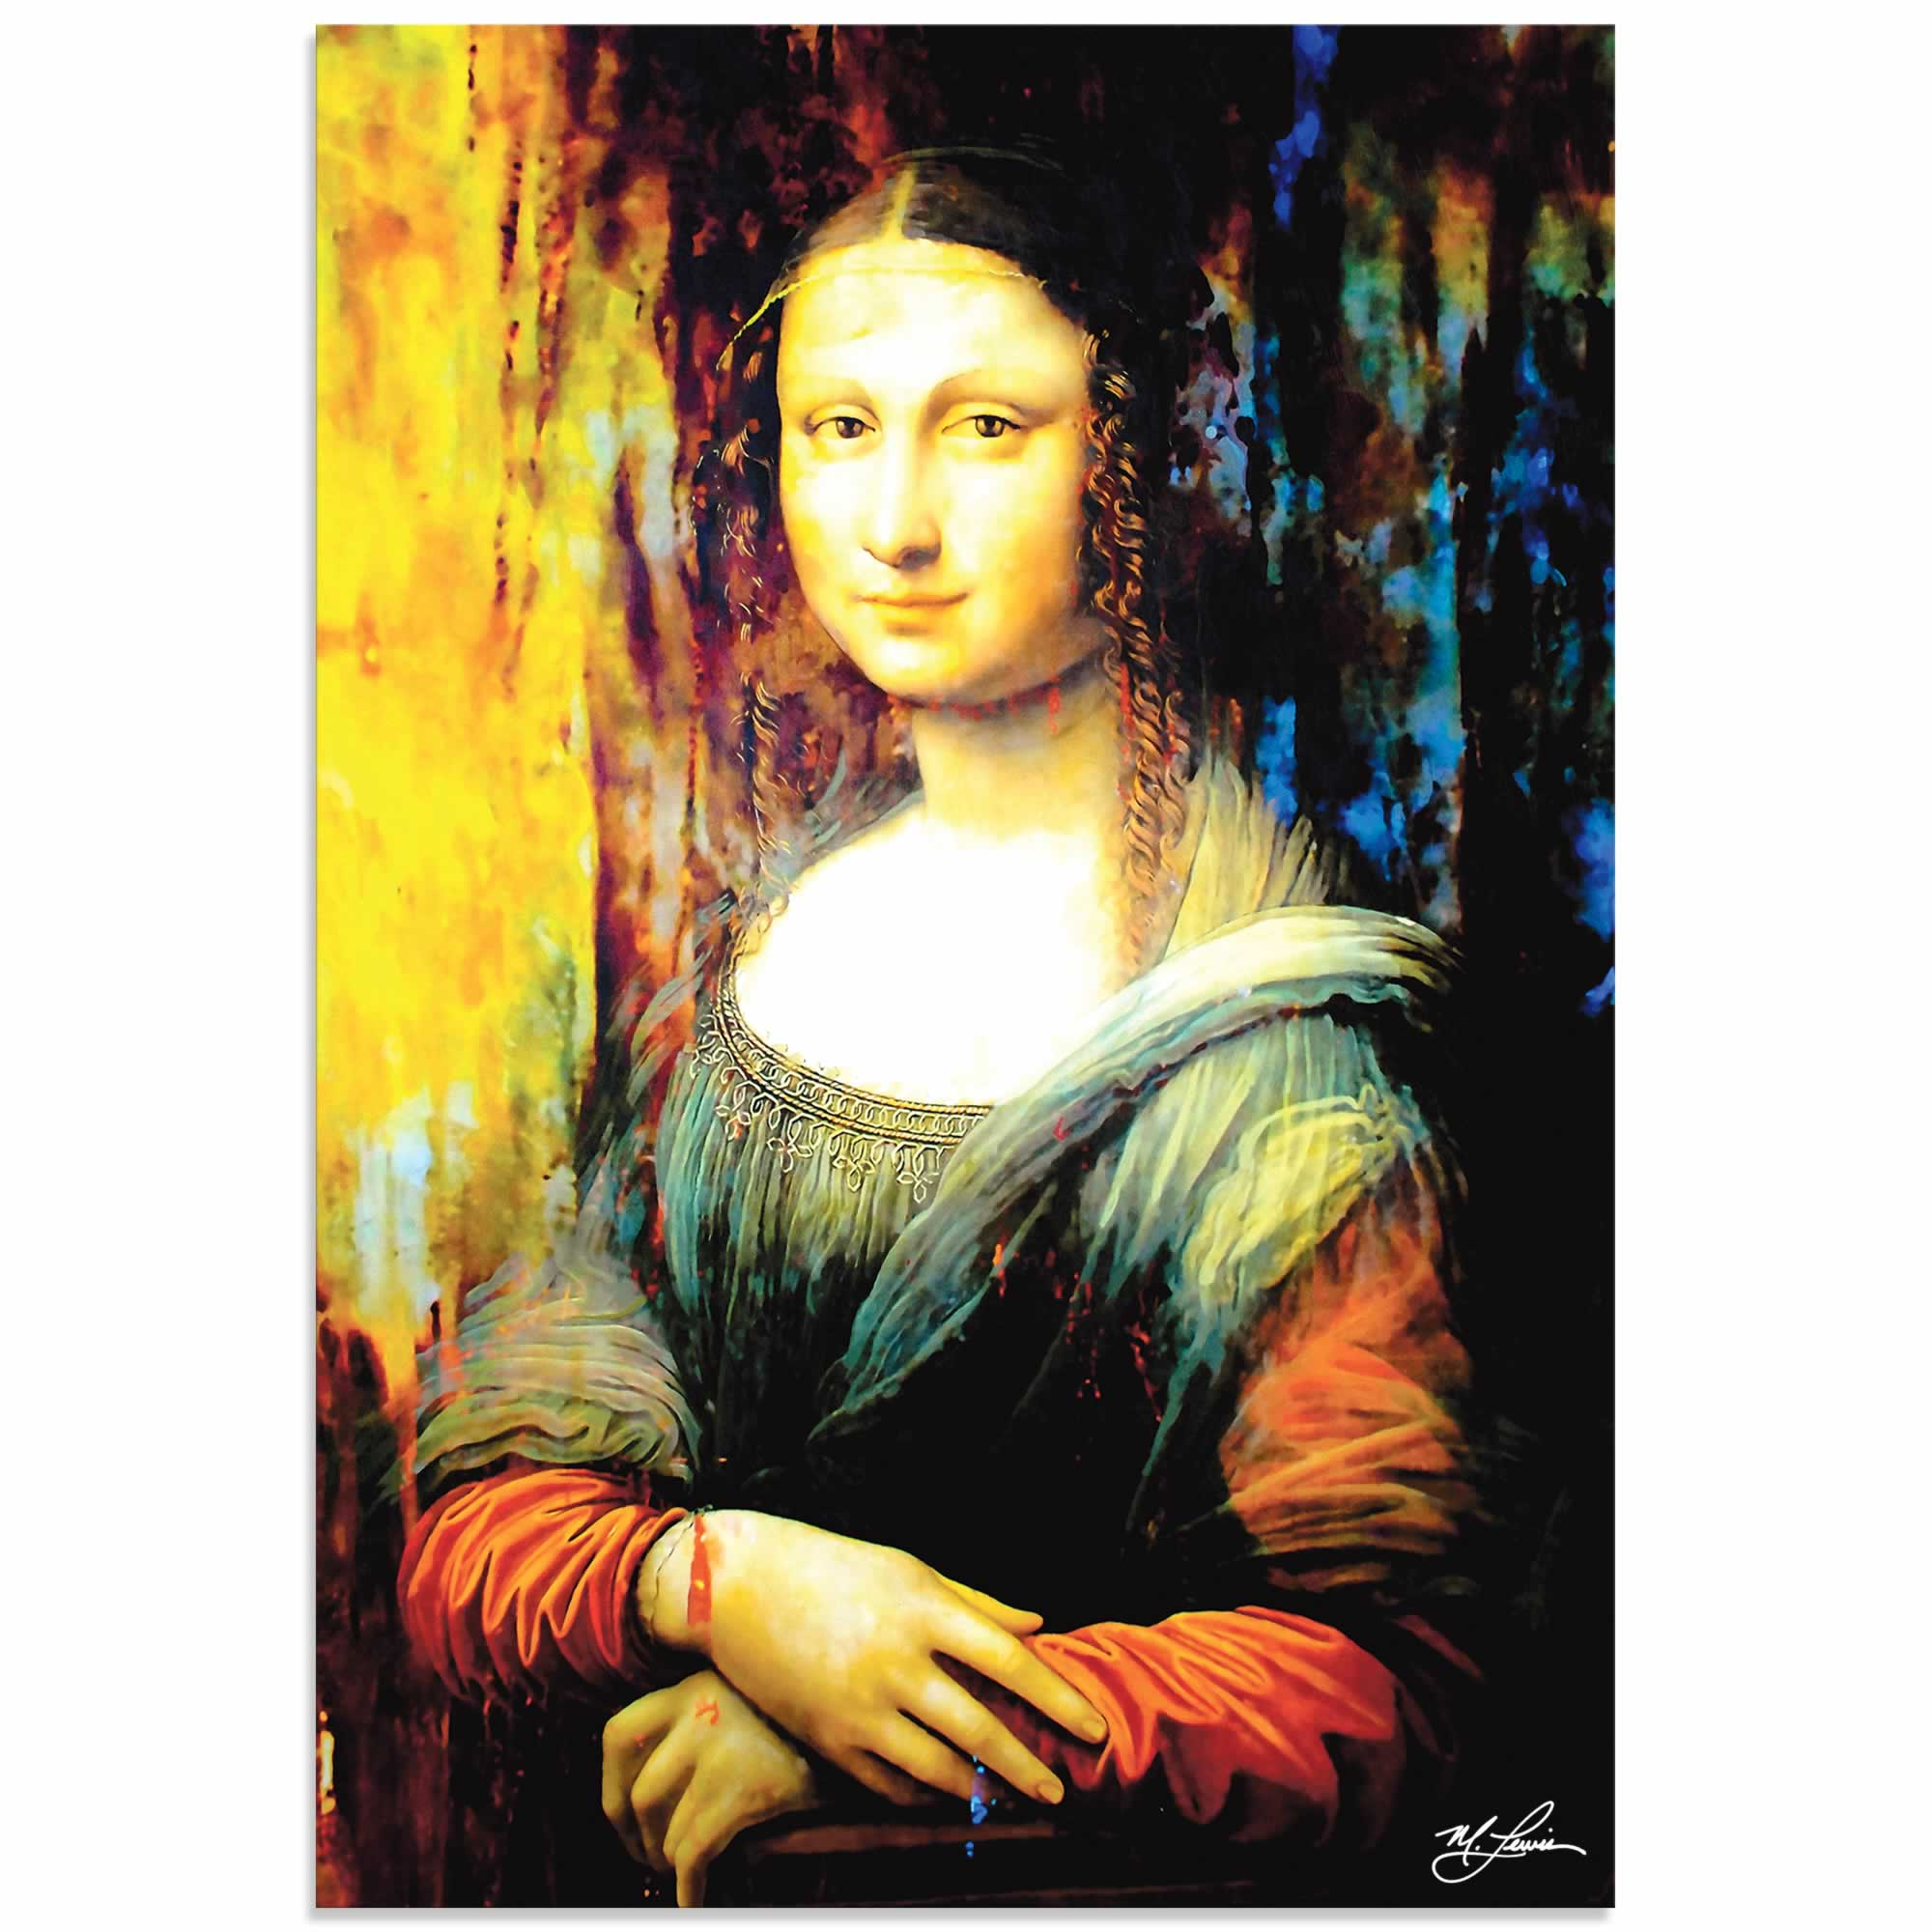 Mona Lisa Ageless Charm | Pop Art Painting by Mark Lewis, Signed & Numbered Limited Edition